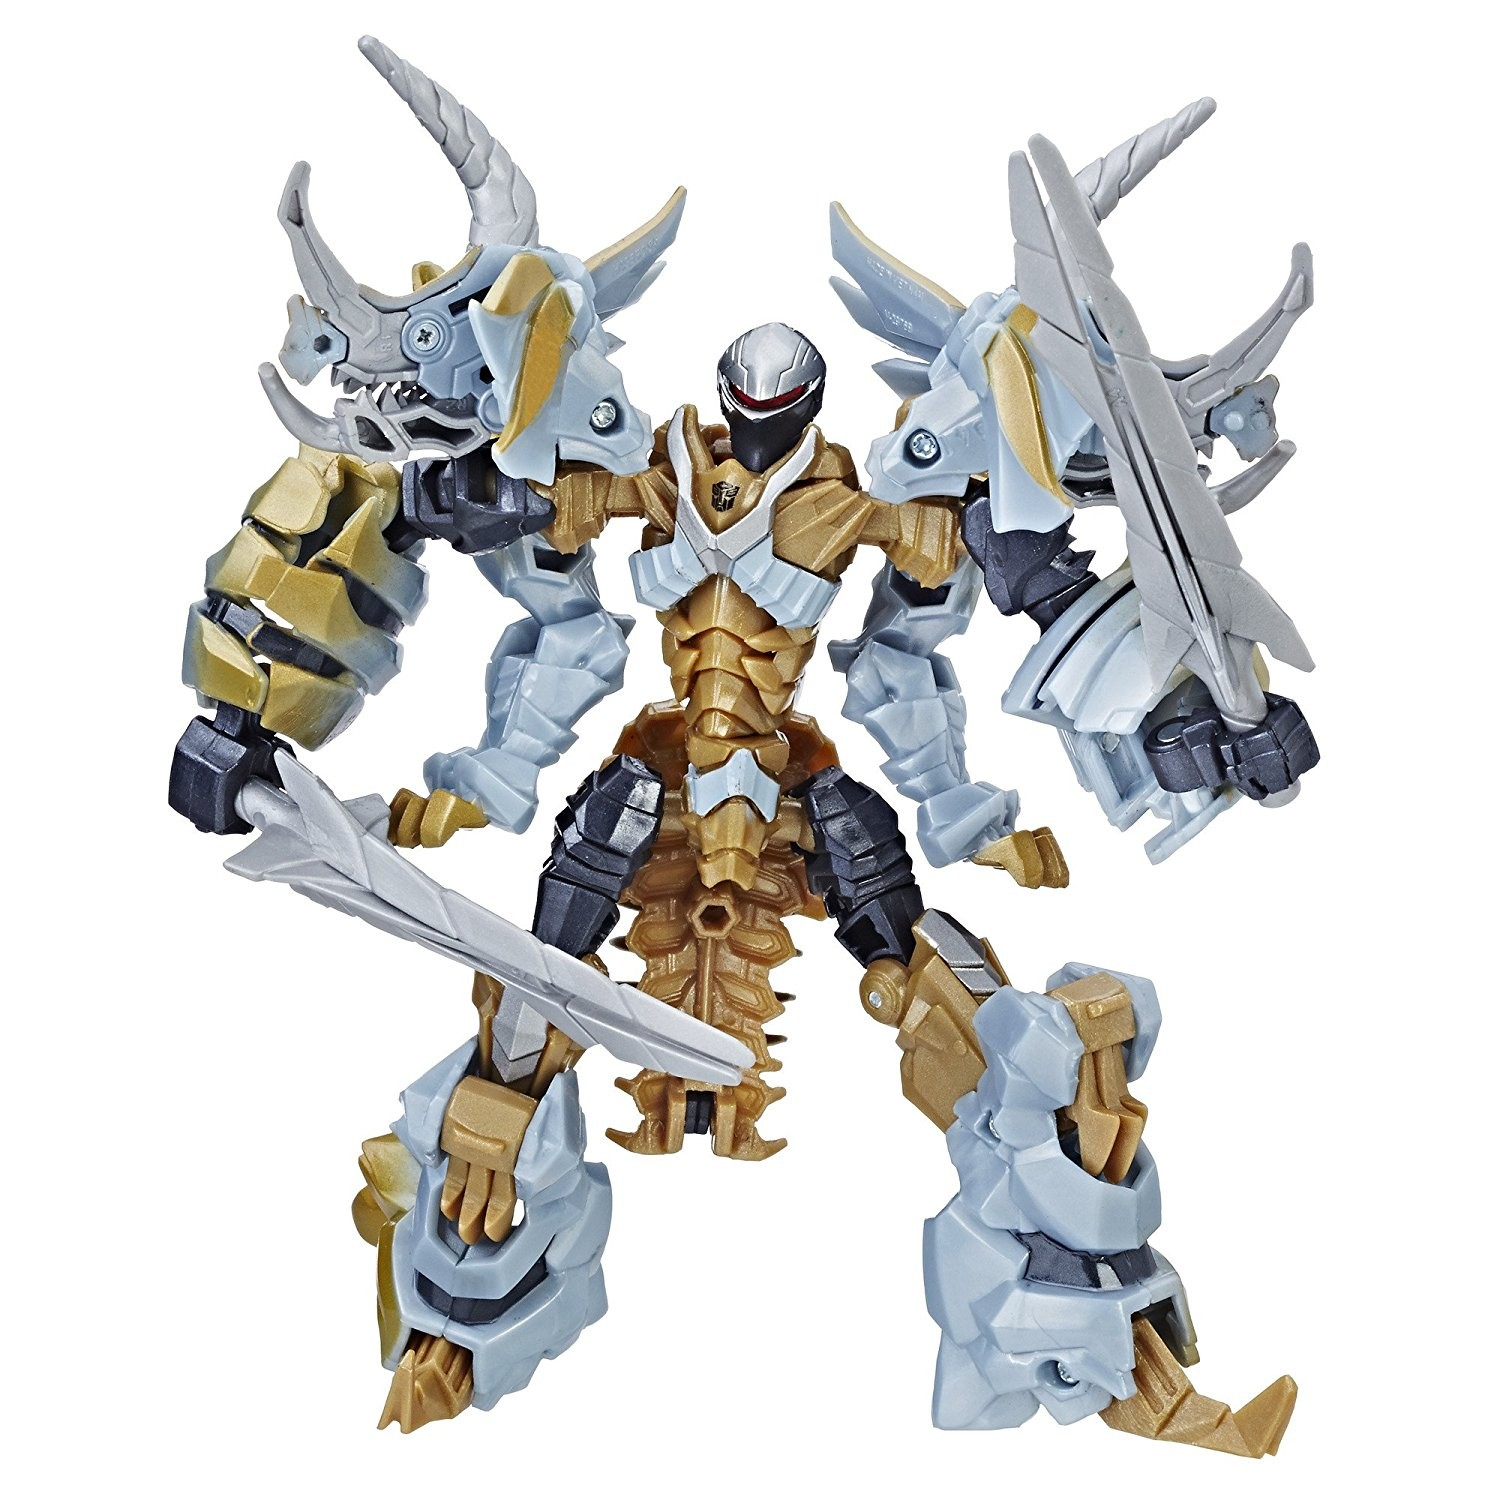 Transformers News: Wave 2 Deluxes and More for Transformers: The Last Knight Toys on Amazon.com